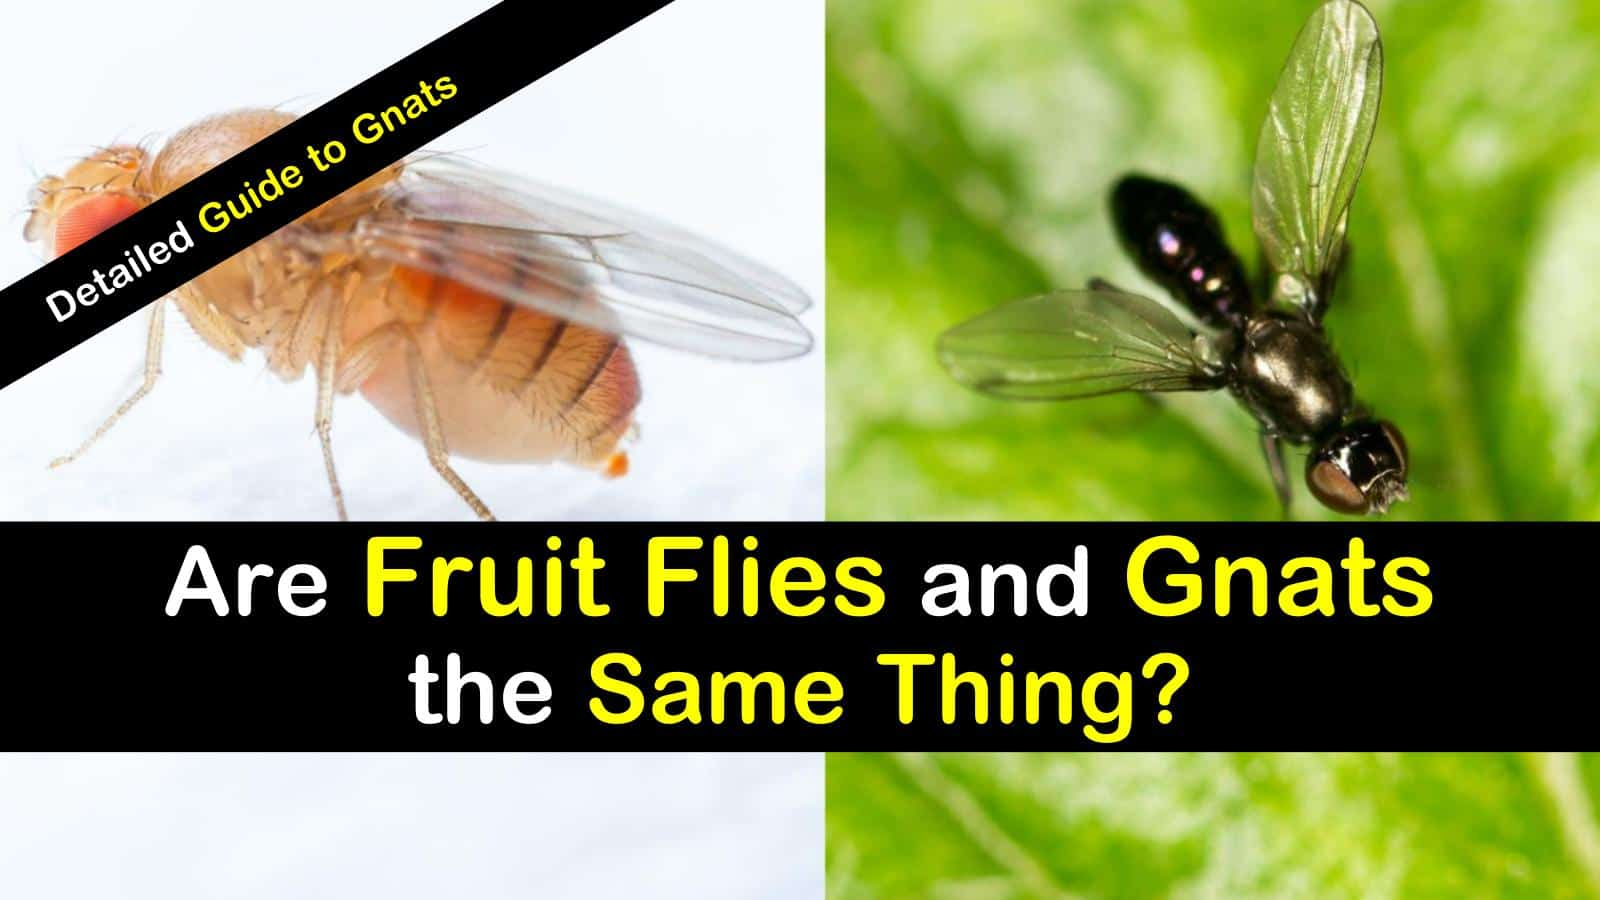 difference between fruit flies vs gnats titileimg1